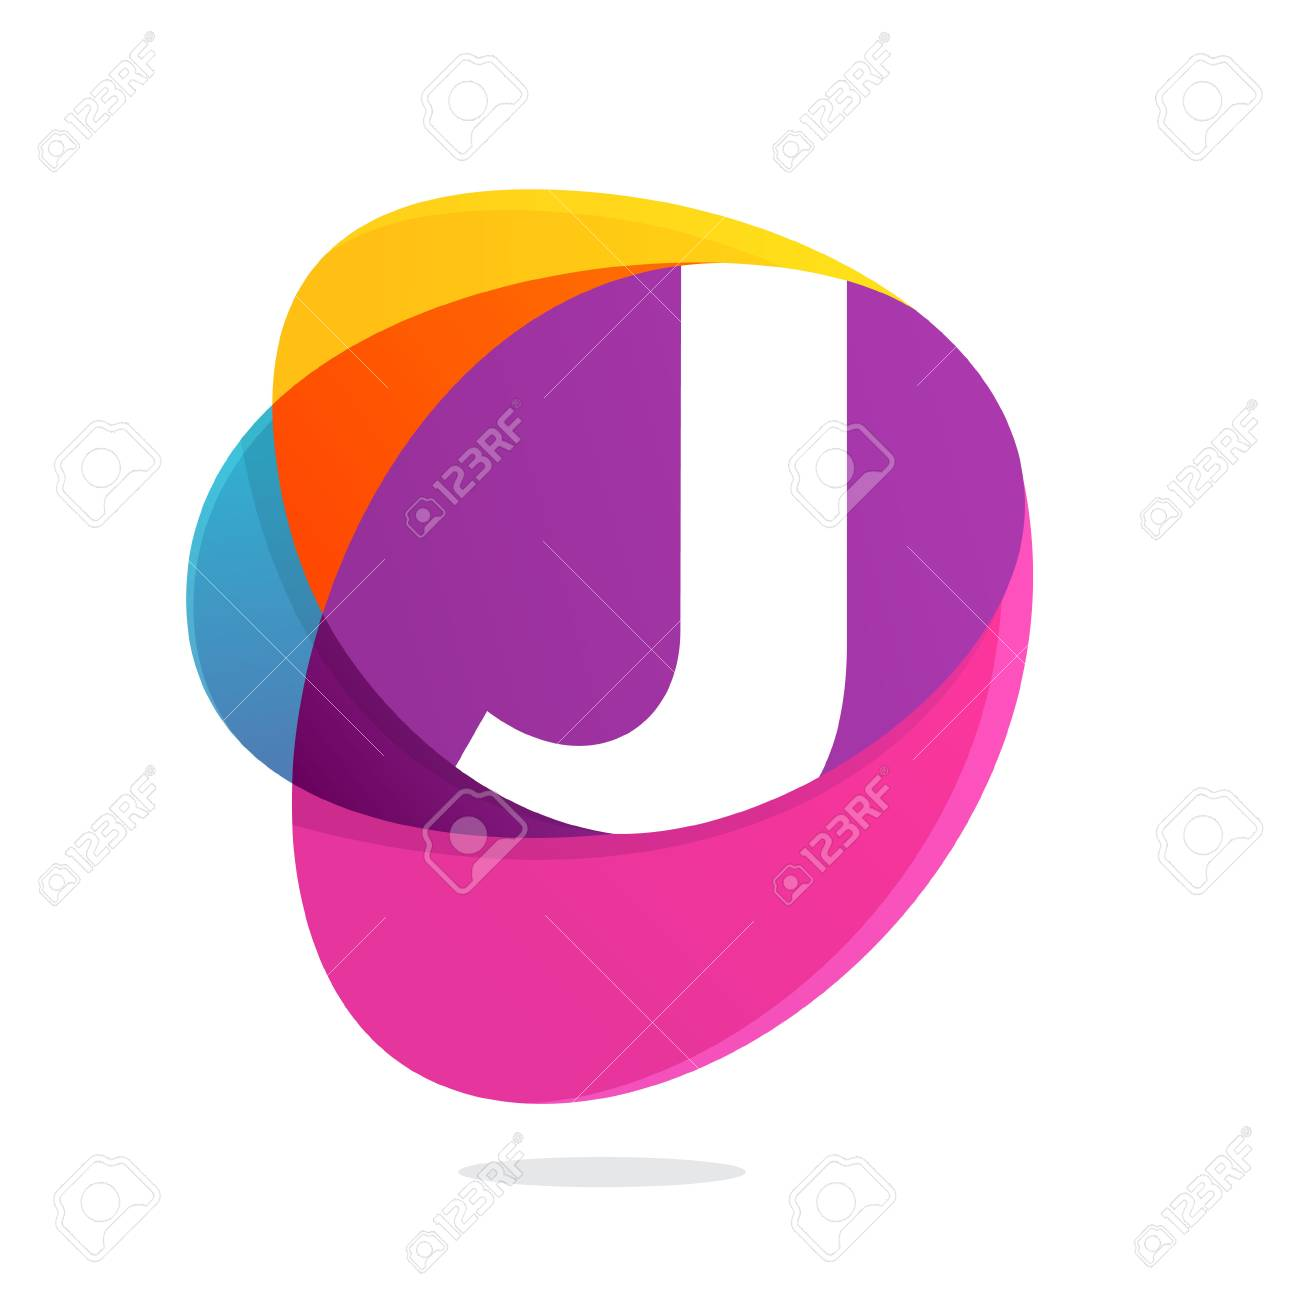 J letter with ellipses intersection logo. Abstract trendy multicolored vector design template elements for your application or corporate identity. - 95603899